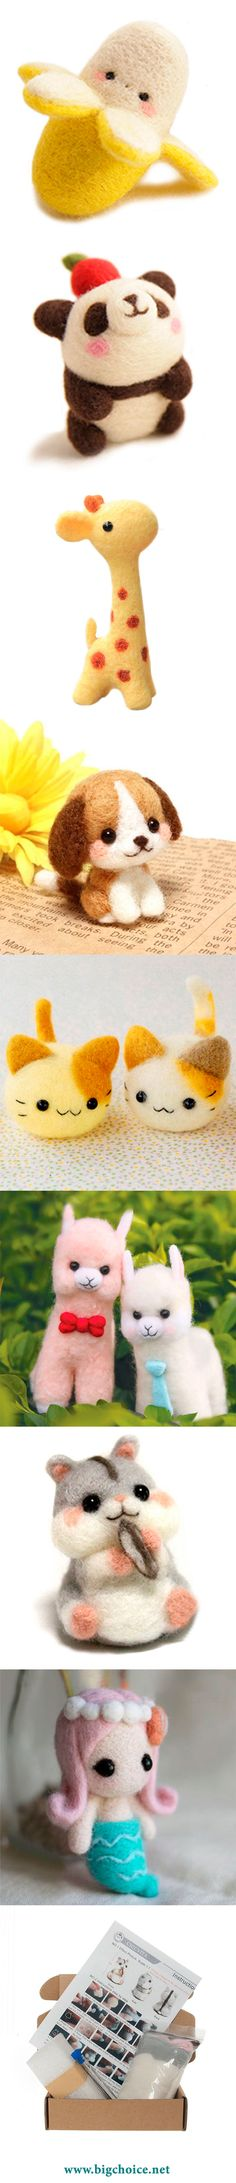 Do you like needle felting and are you looking for cool ideas? Buy needle felting DIY kit and make different characters like panda, cat, dog, giraffe, banana, etc. How to start needle felting?  Get DIY kit, that has everything for beginners.